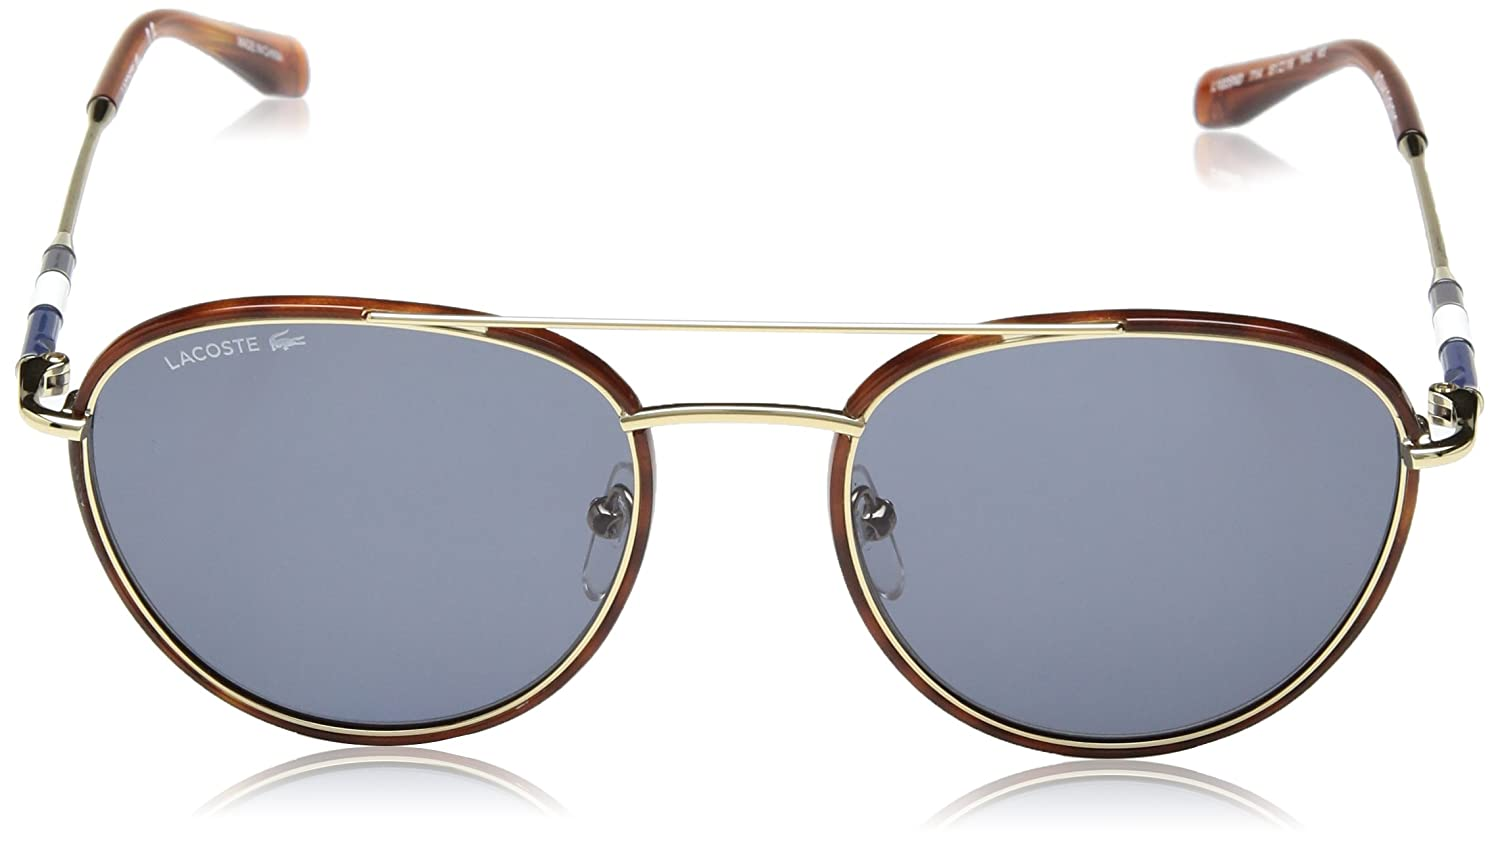 Lacoste Mens L102snd Metal Oval Novak Djokovic Capsule Collection Sunglasses, Gold 51 mm